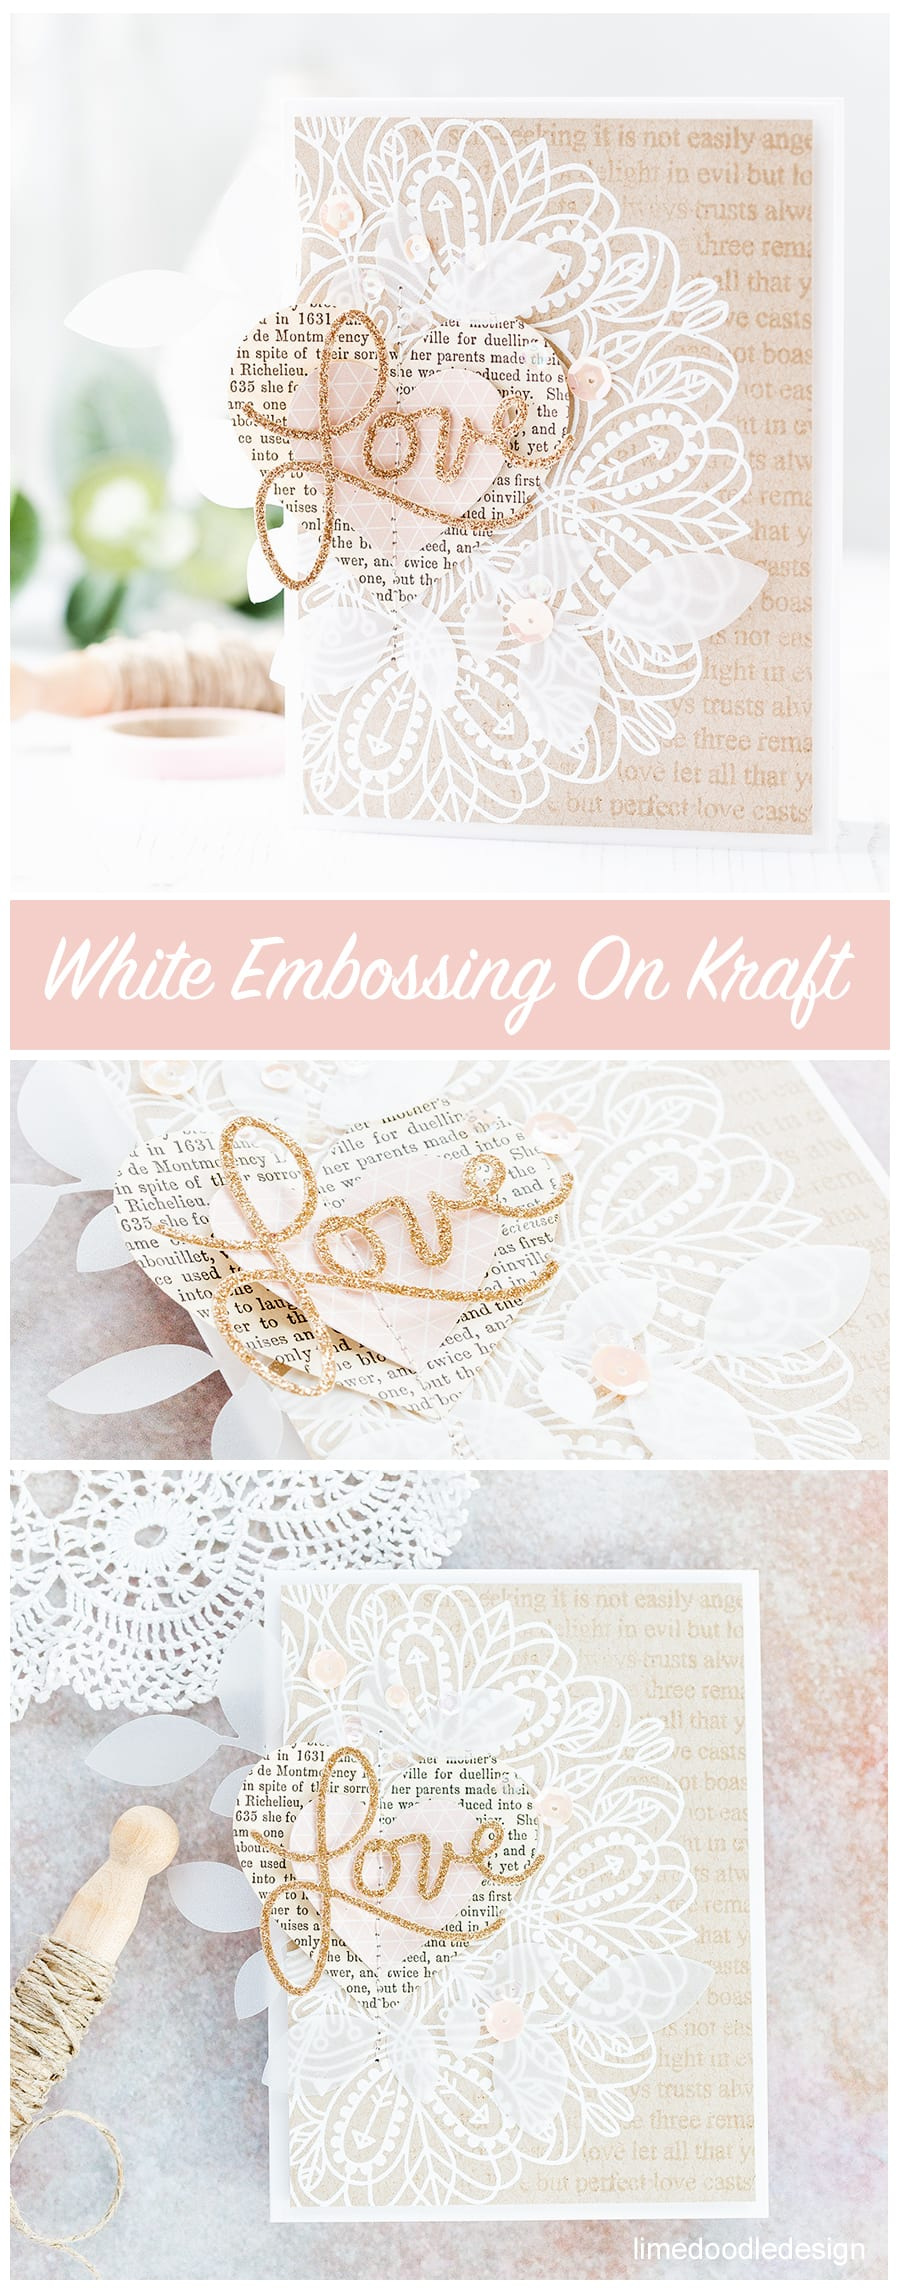 White embossing on kraft Valentine's card by Debby Hughes. Find out more about this card by clicking on the following link: http://limedoodledesign.com/2017/02/white-embossing-on-kraft/